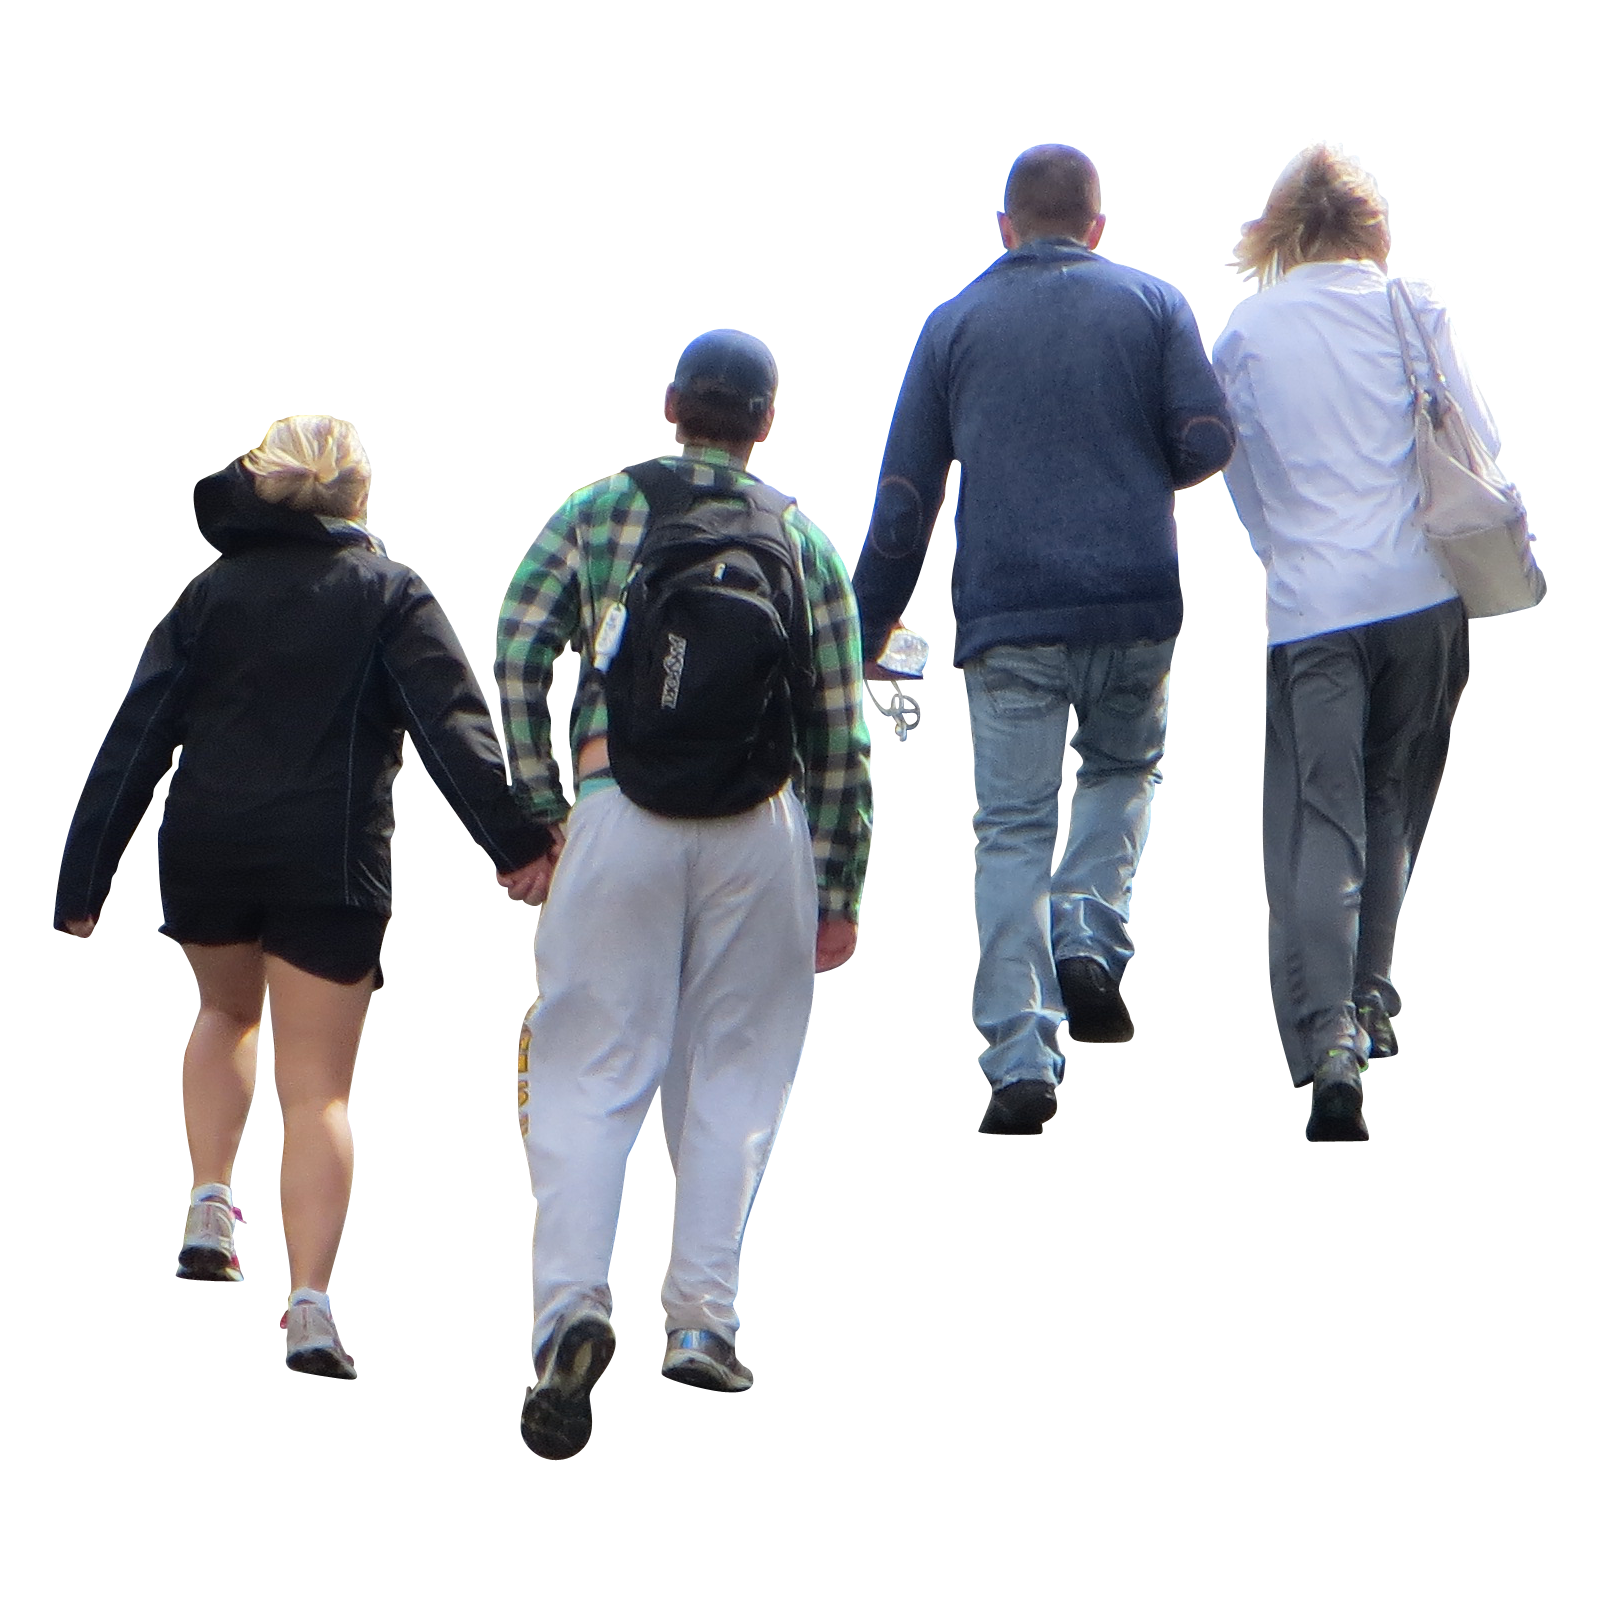 People walking down stairs png. Up immediate entourage chainimage